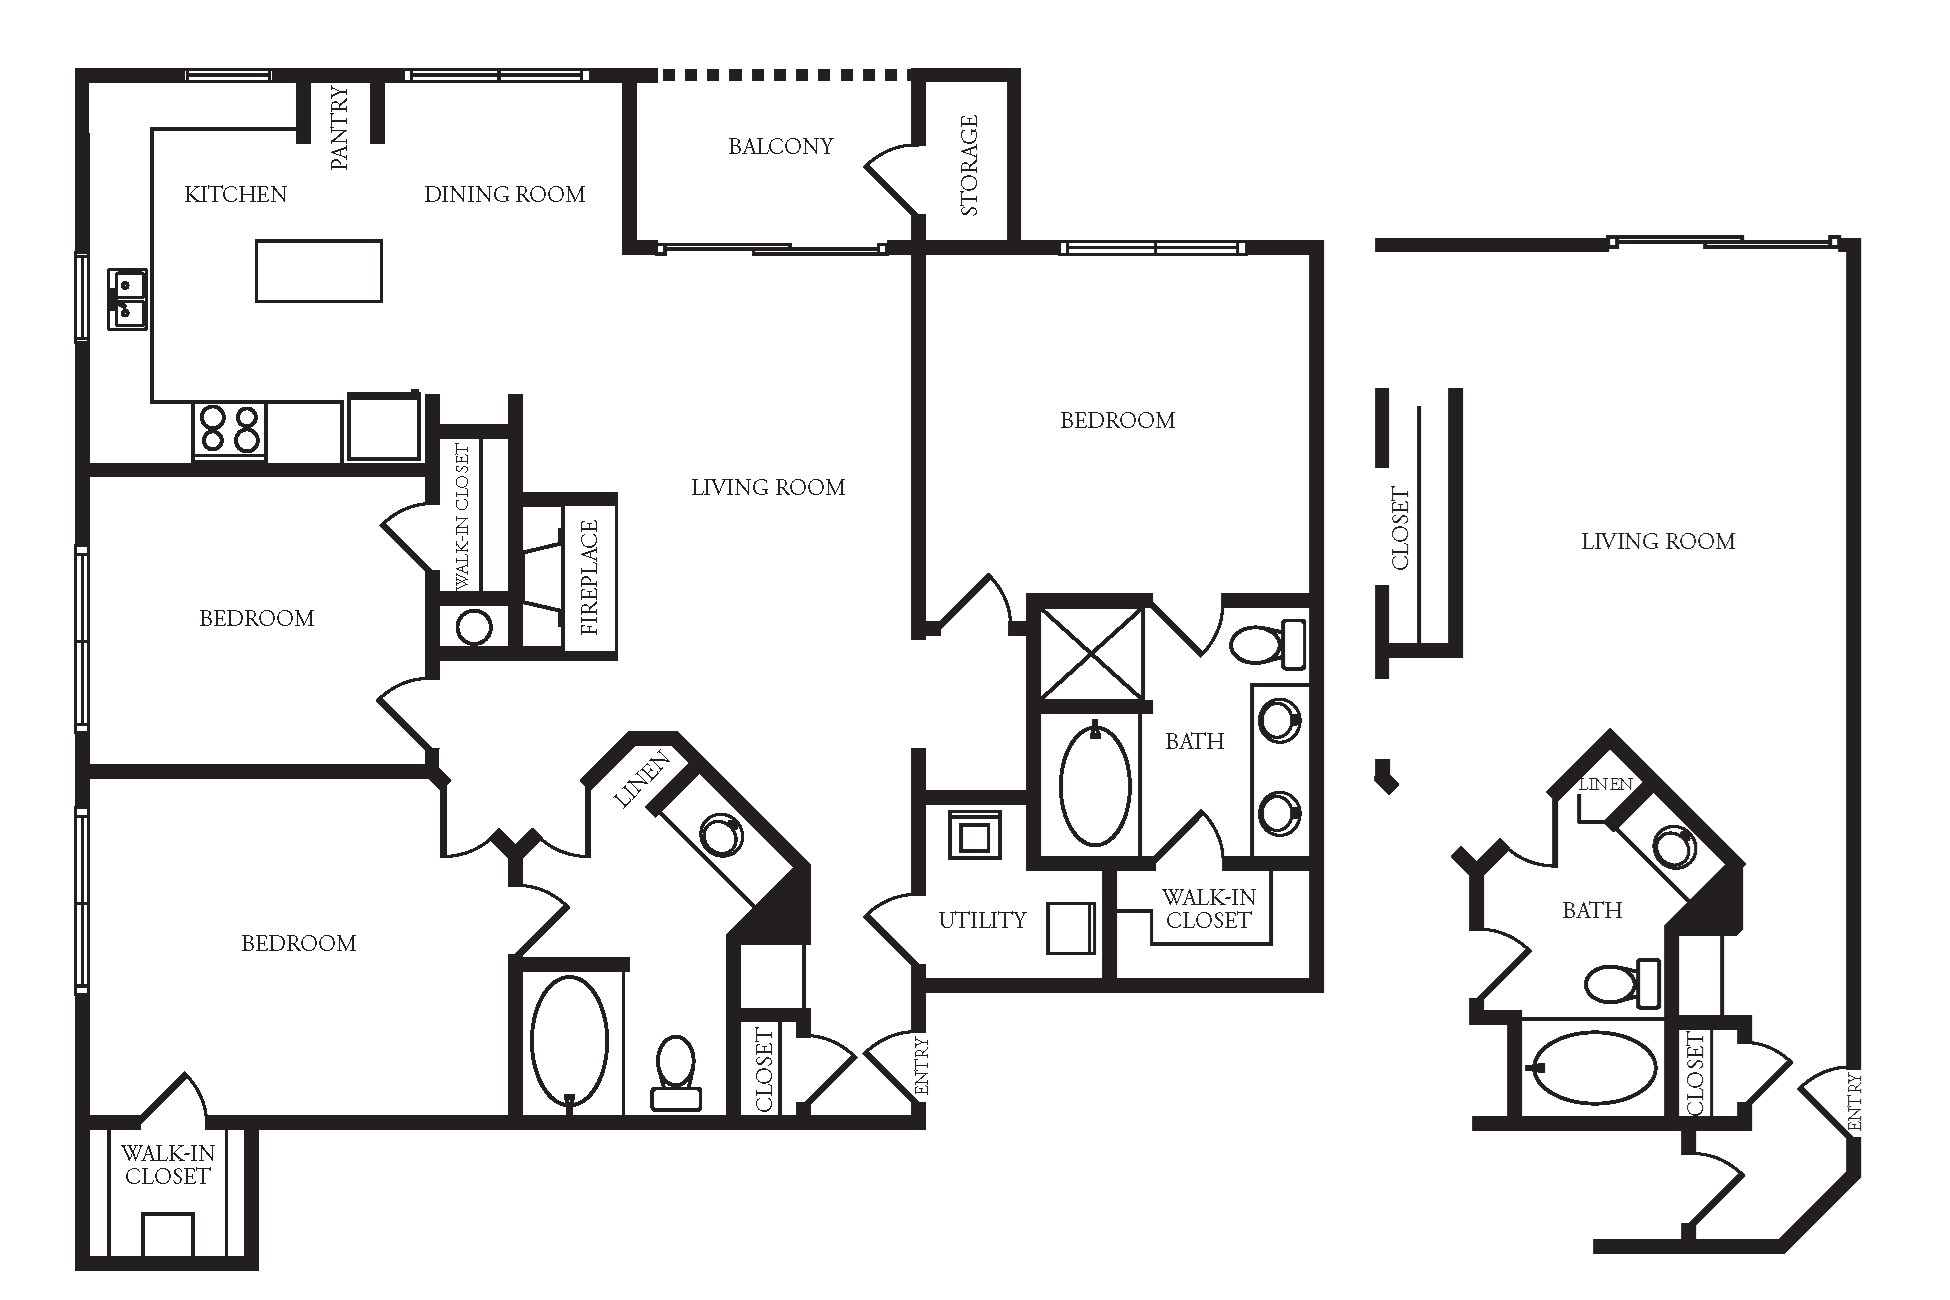 Providence In The Park Apartment Homes - 3 Bedroom 2 Bath Apartment